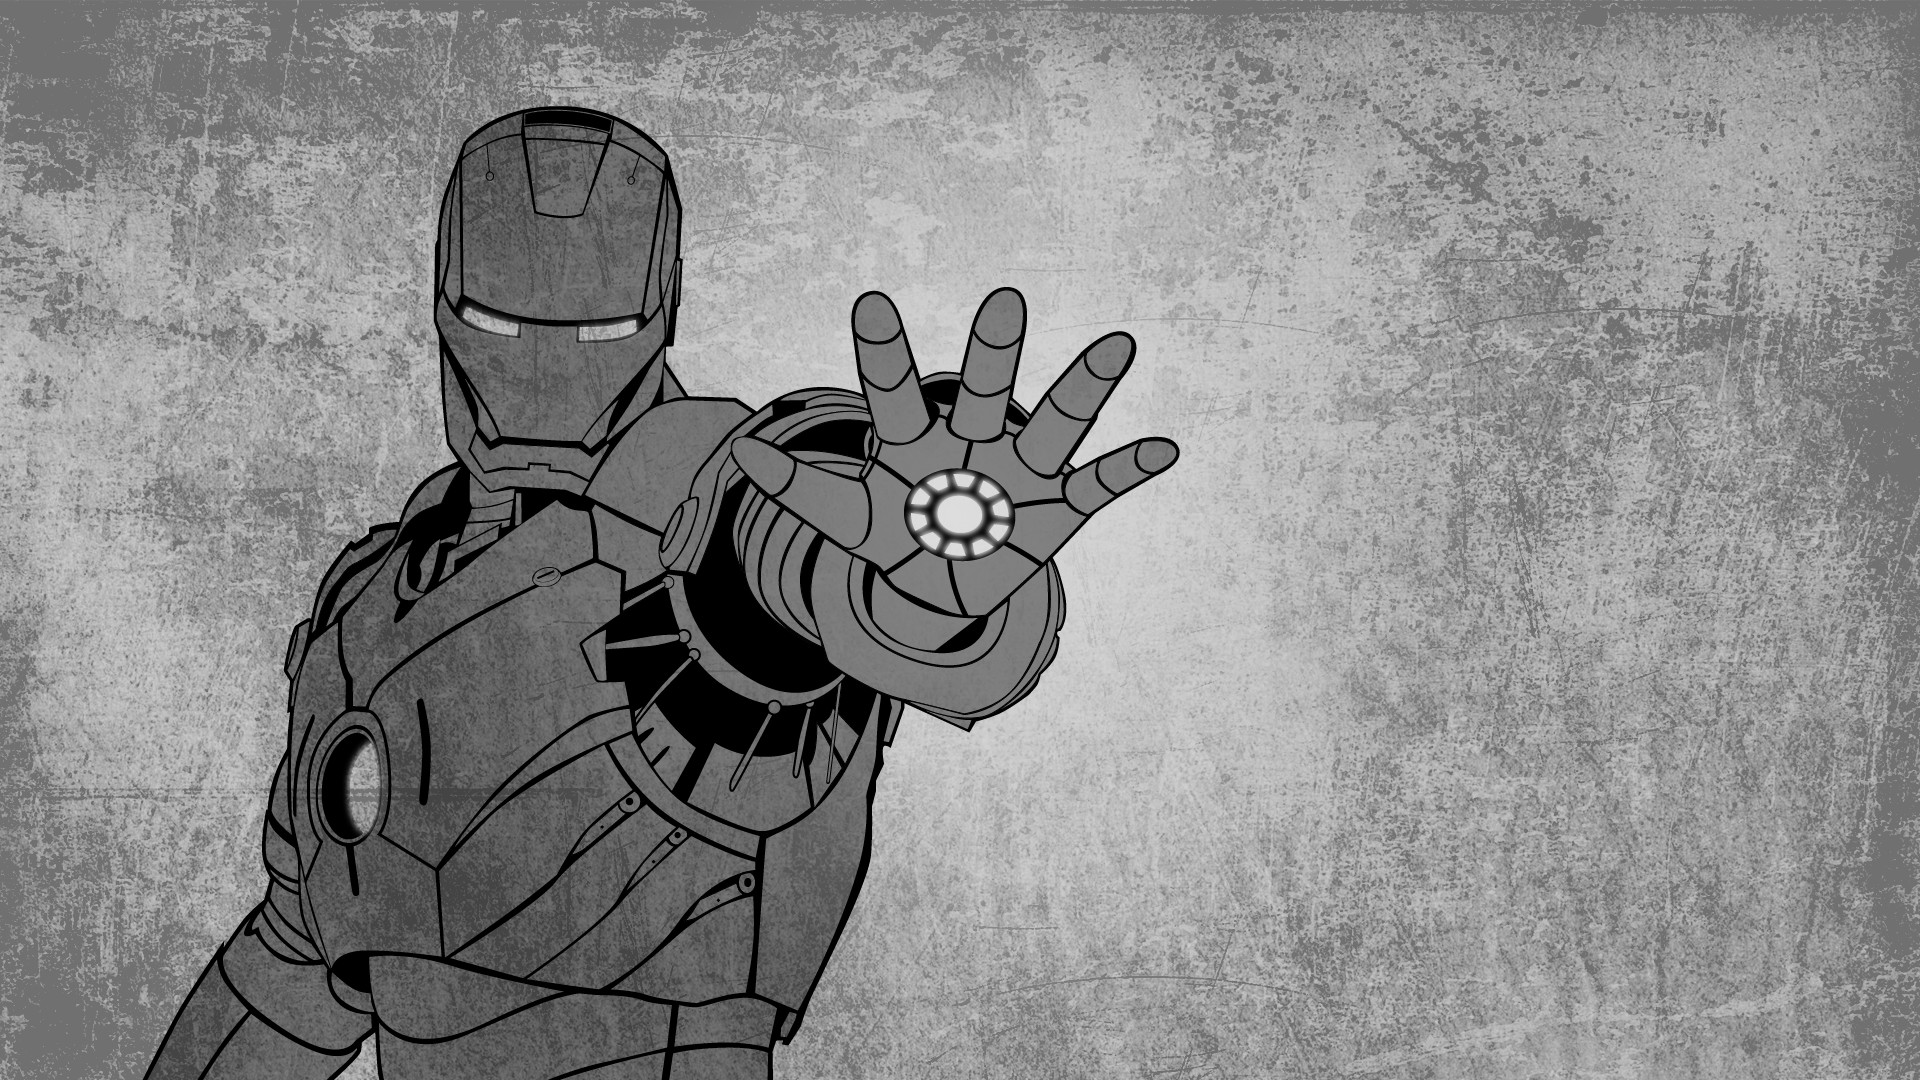 1920x1080  Iron Man Grunge Artwork